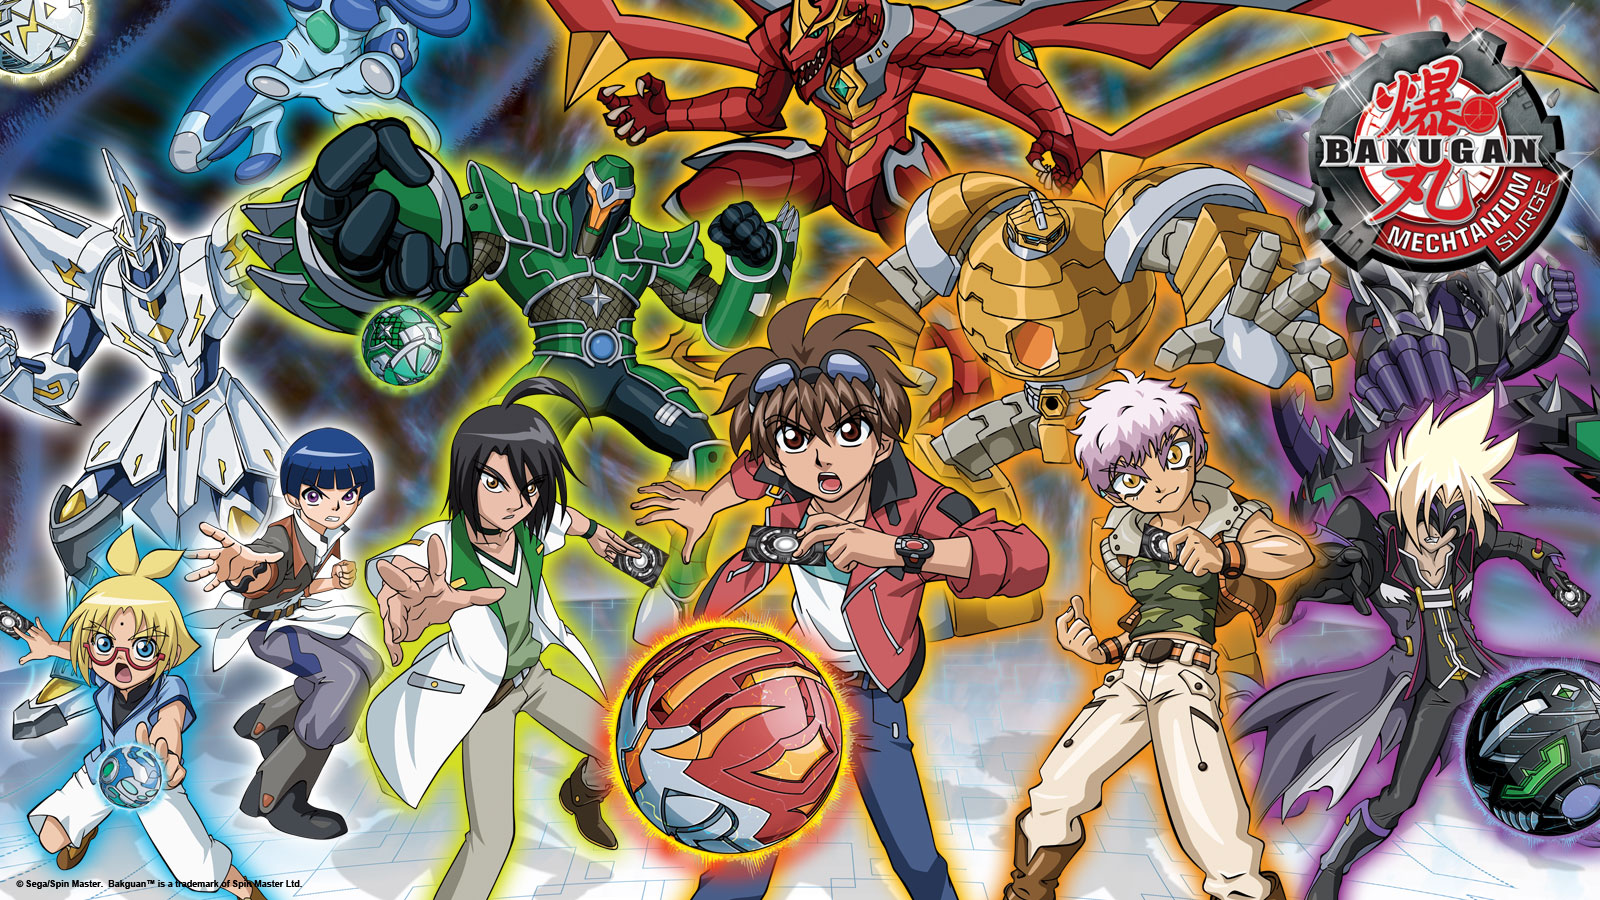 New Cartoon Wallpaper: Bakugan Mechtanium Surge: new-cartoon-wallpaper.blogspot.com/2012/08/bakugan-mechtanium-surge...